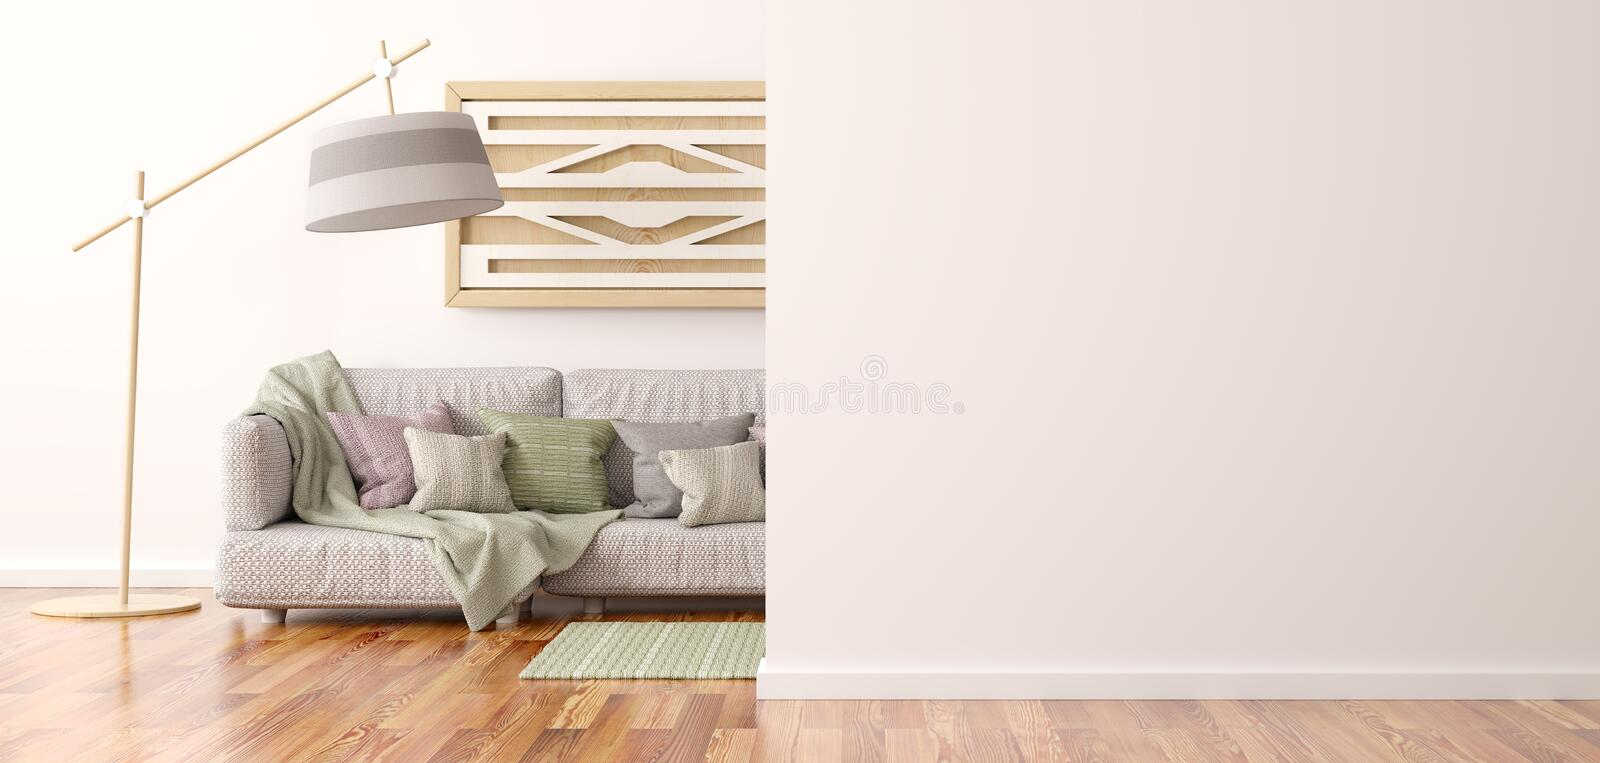 Interior design of modern living room with sofa 3d rendering. Interior design of modern living room with sofa and lamp, 3d rendering stock illustration